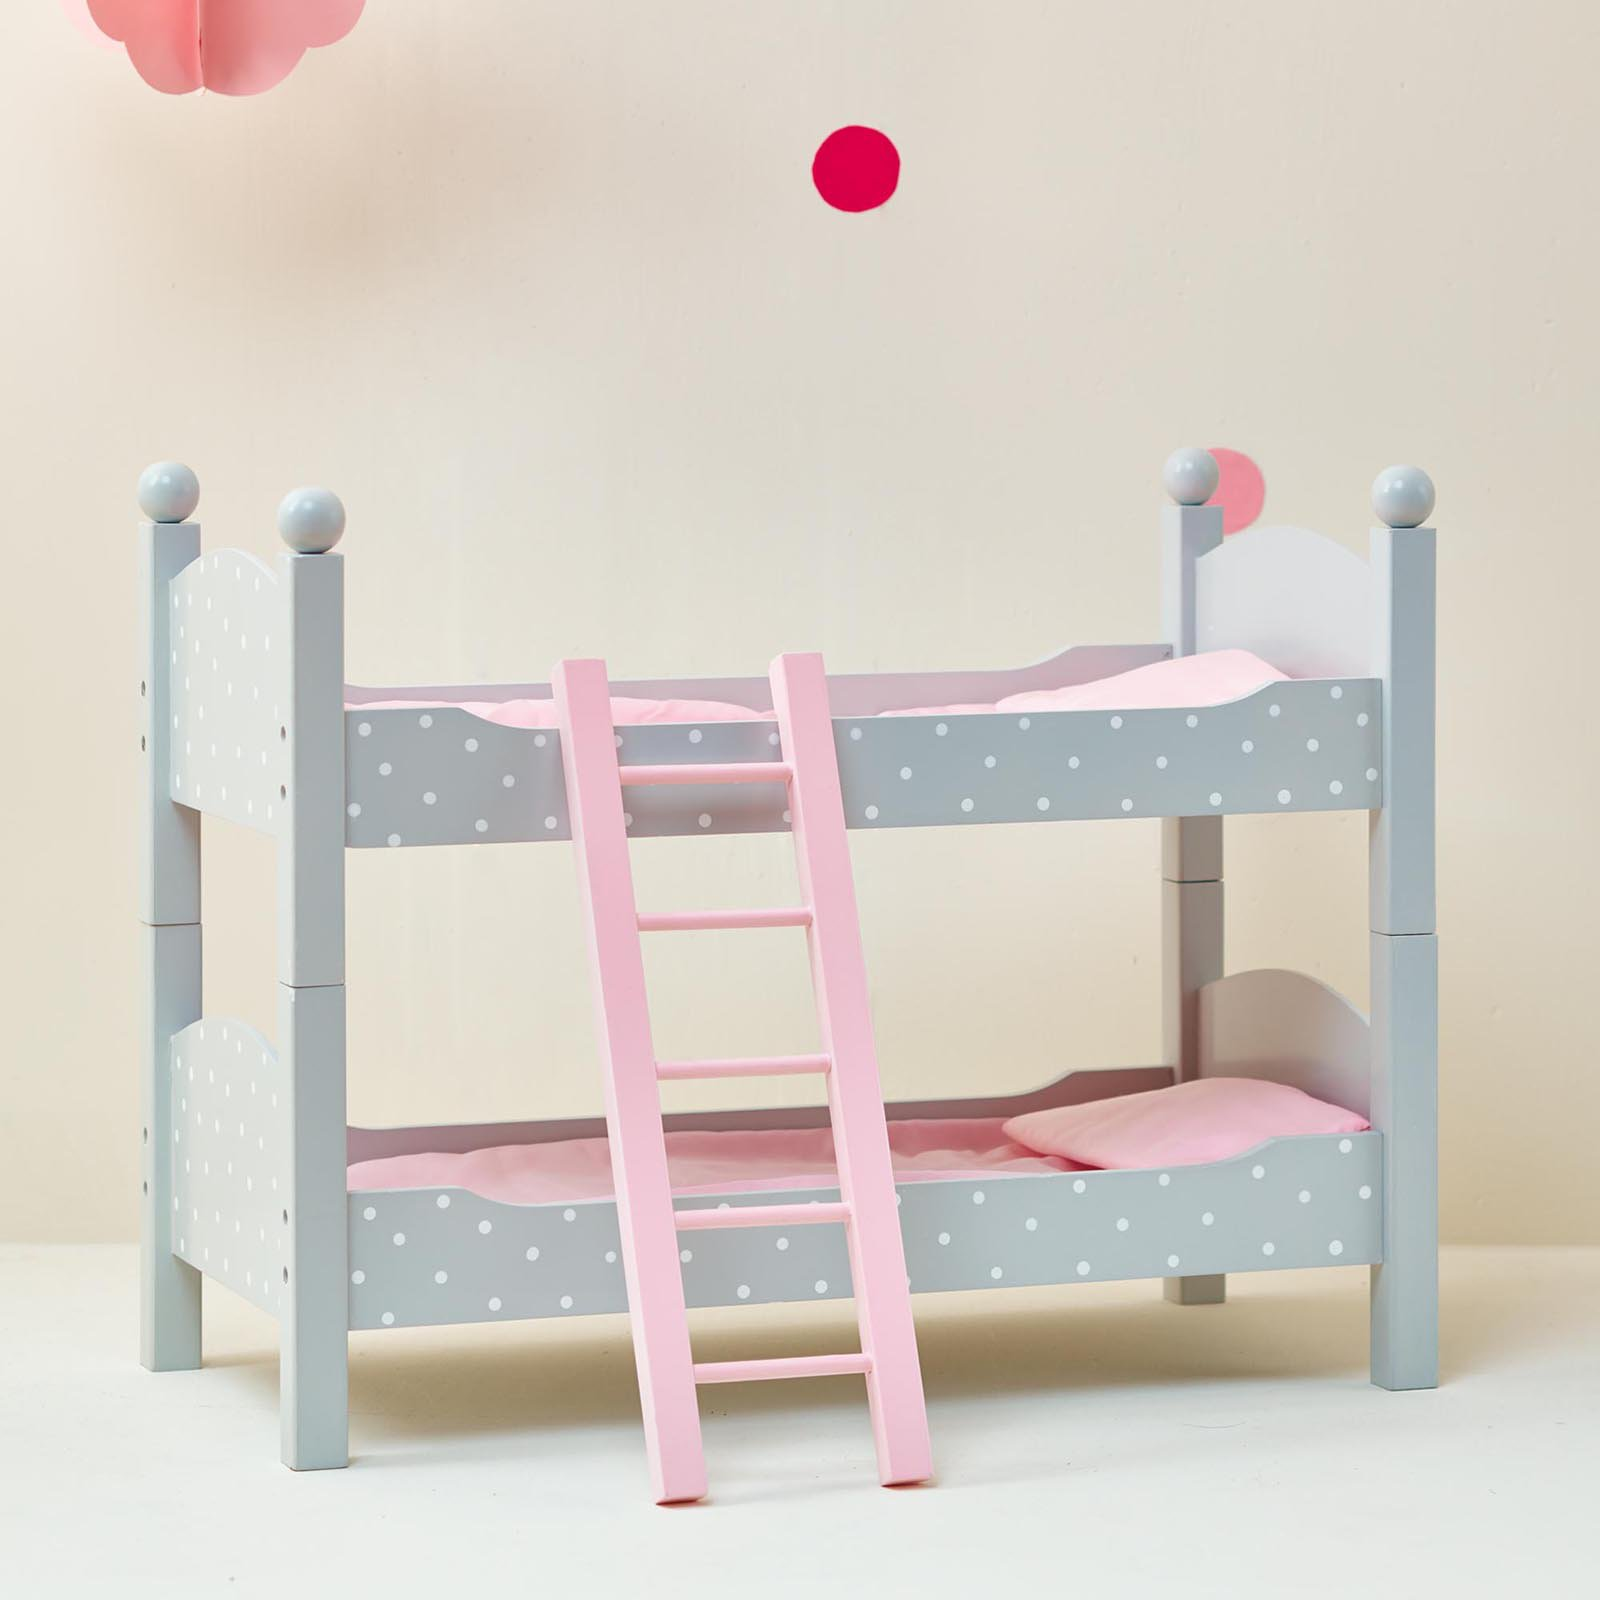 Olivia's Little World - 18 inch Doll Furniture - Double Bunk Bed (Grey Polka Dots)